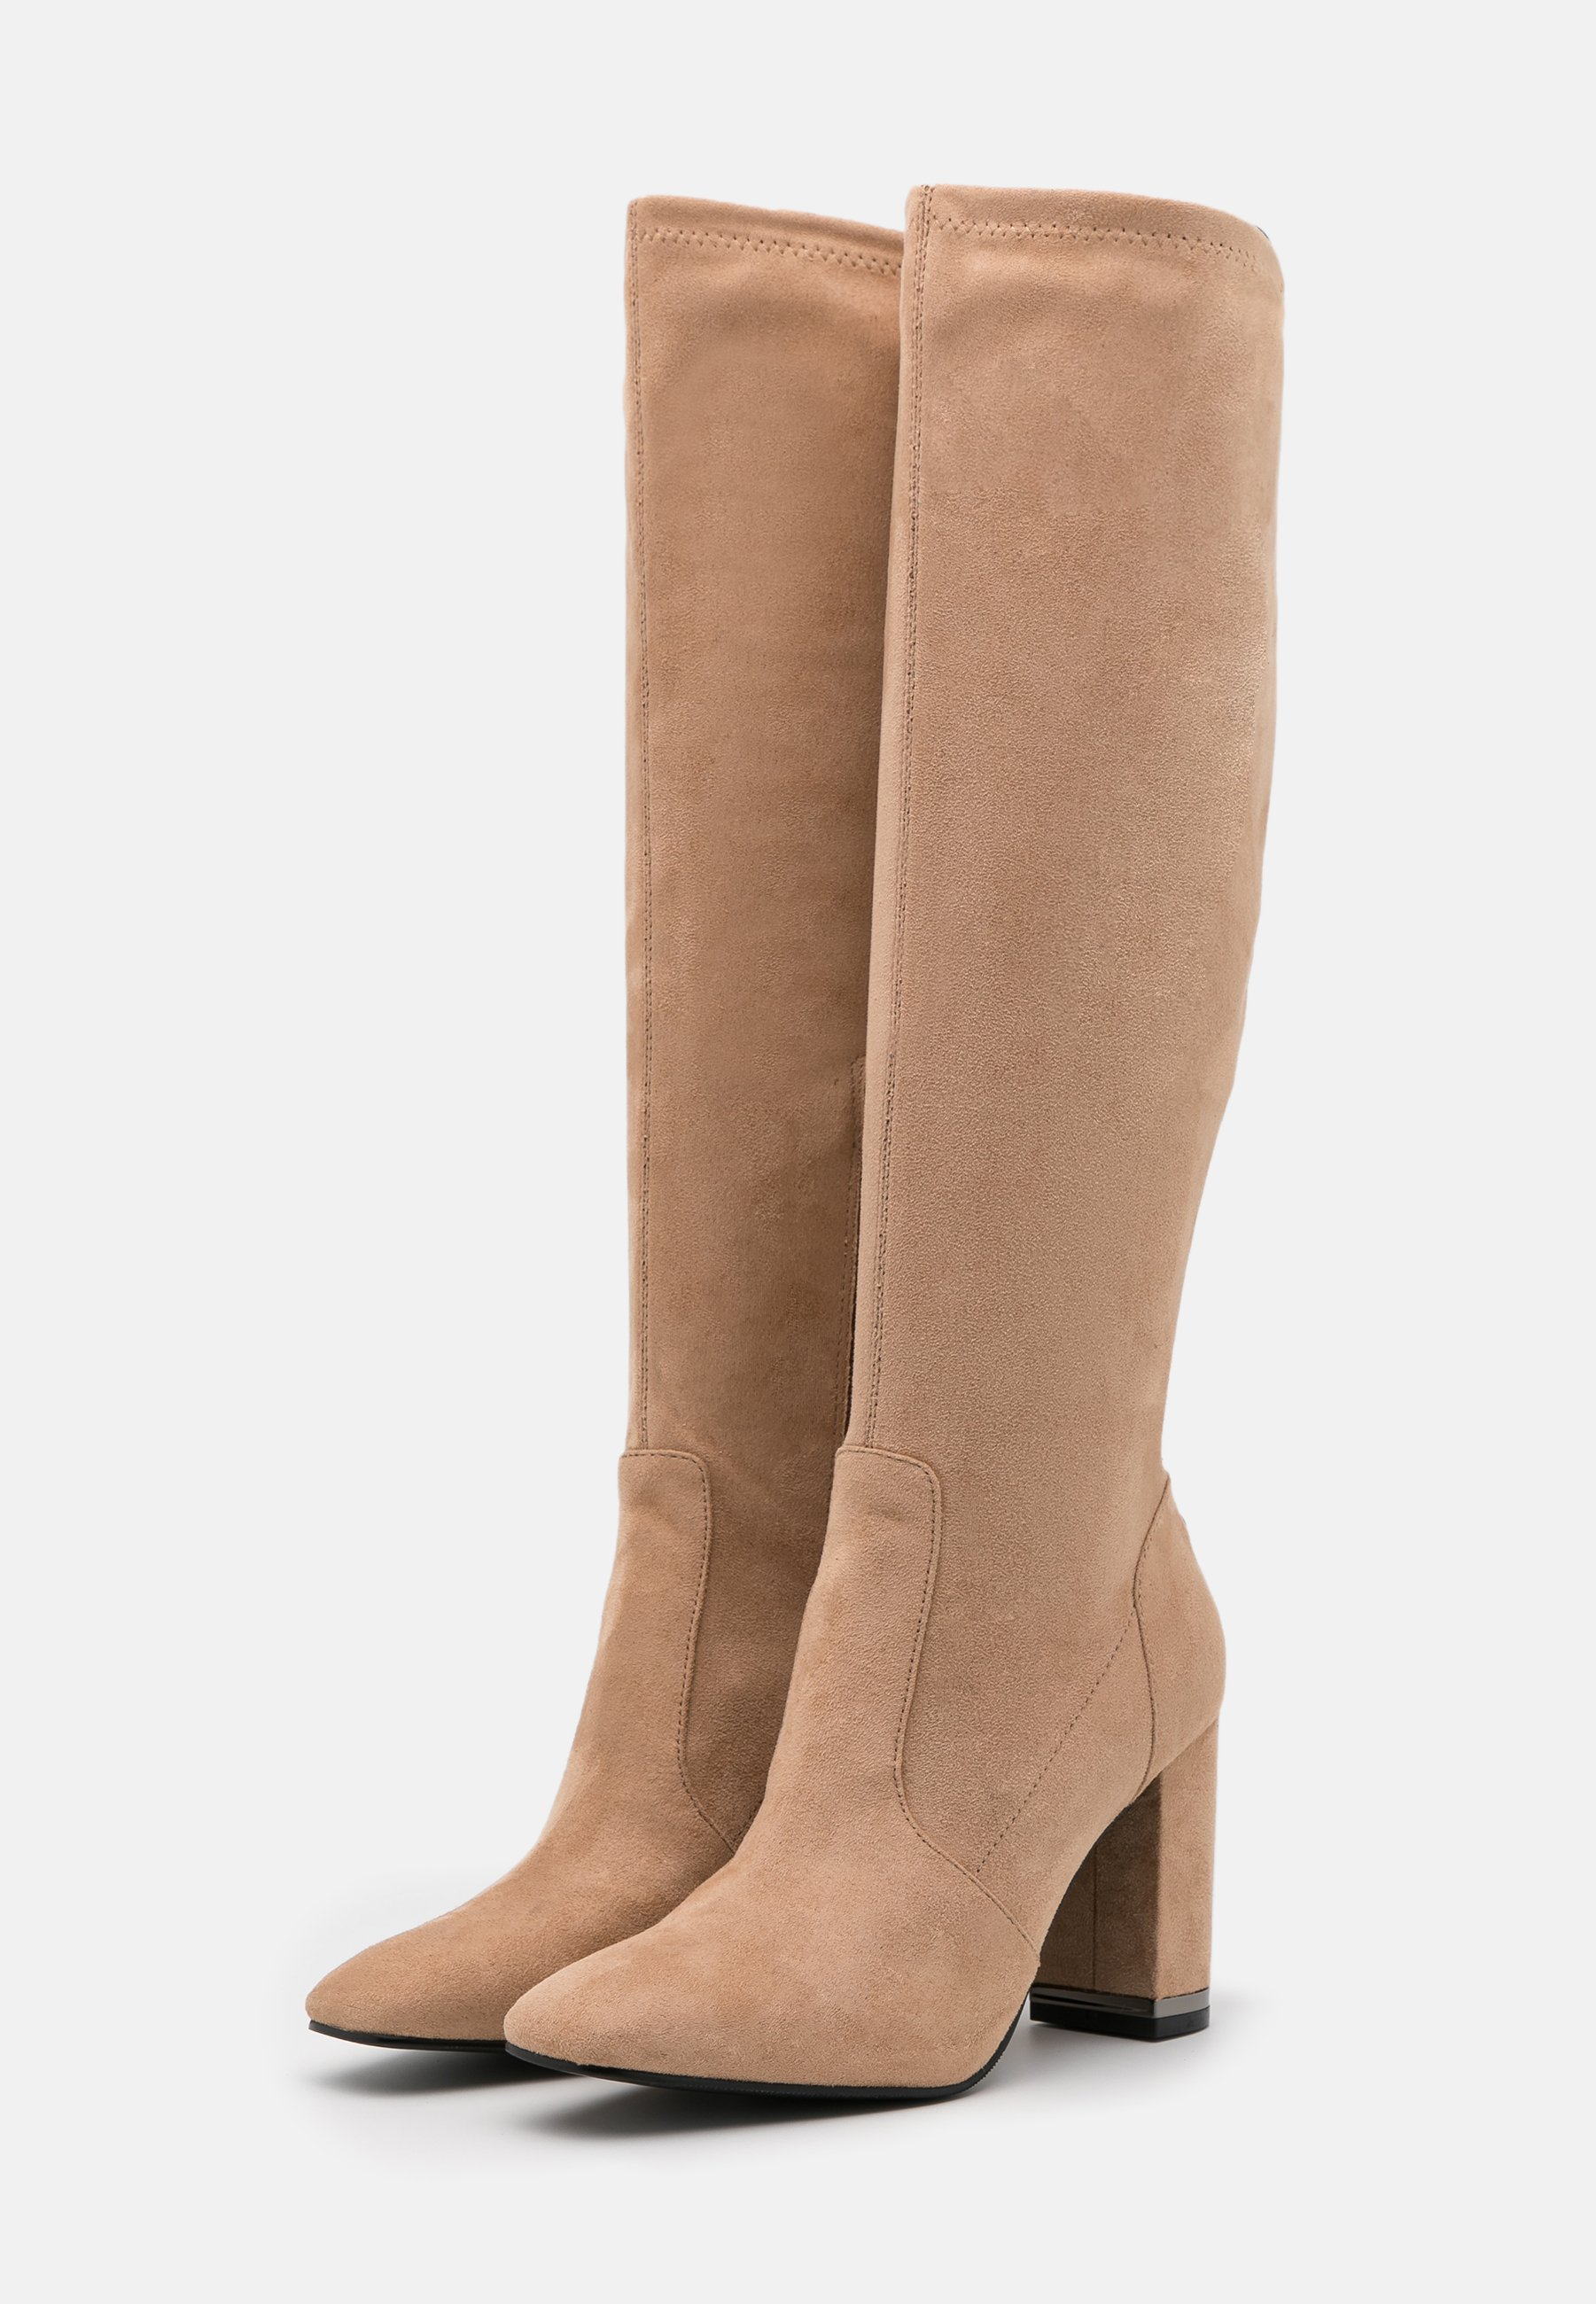 Guess DARLENE Stiefel taupe